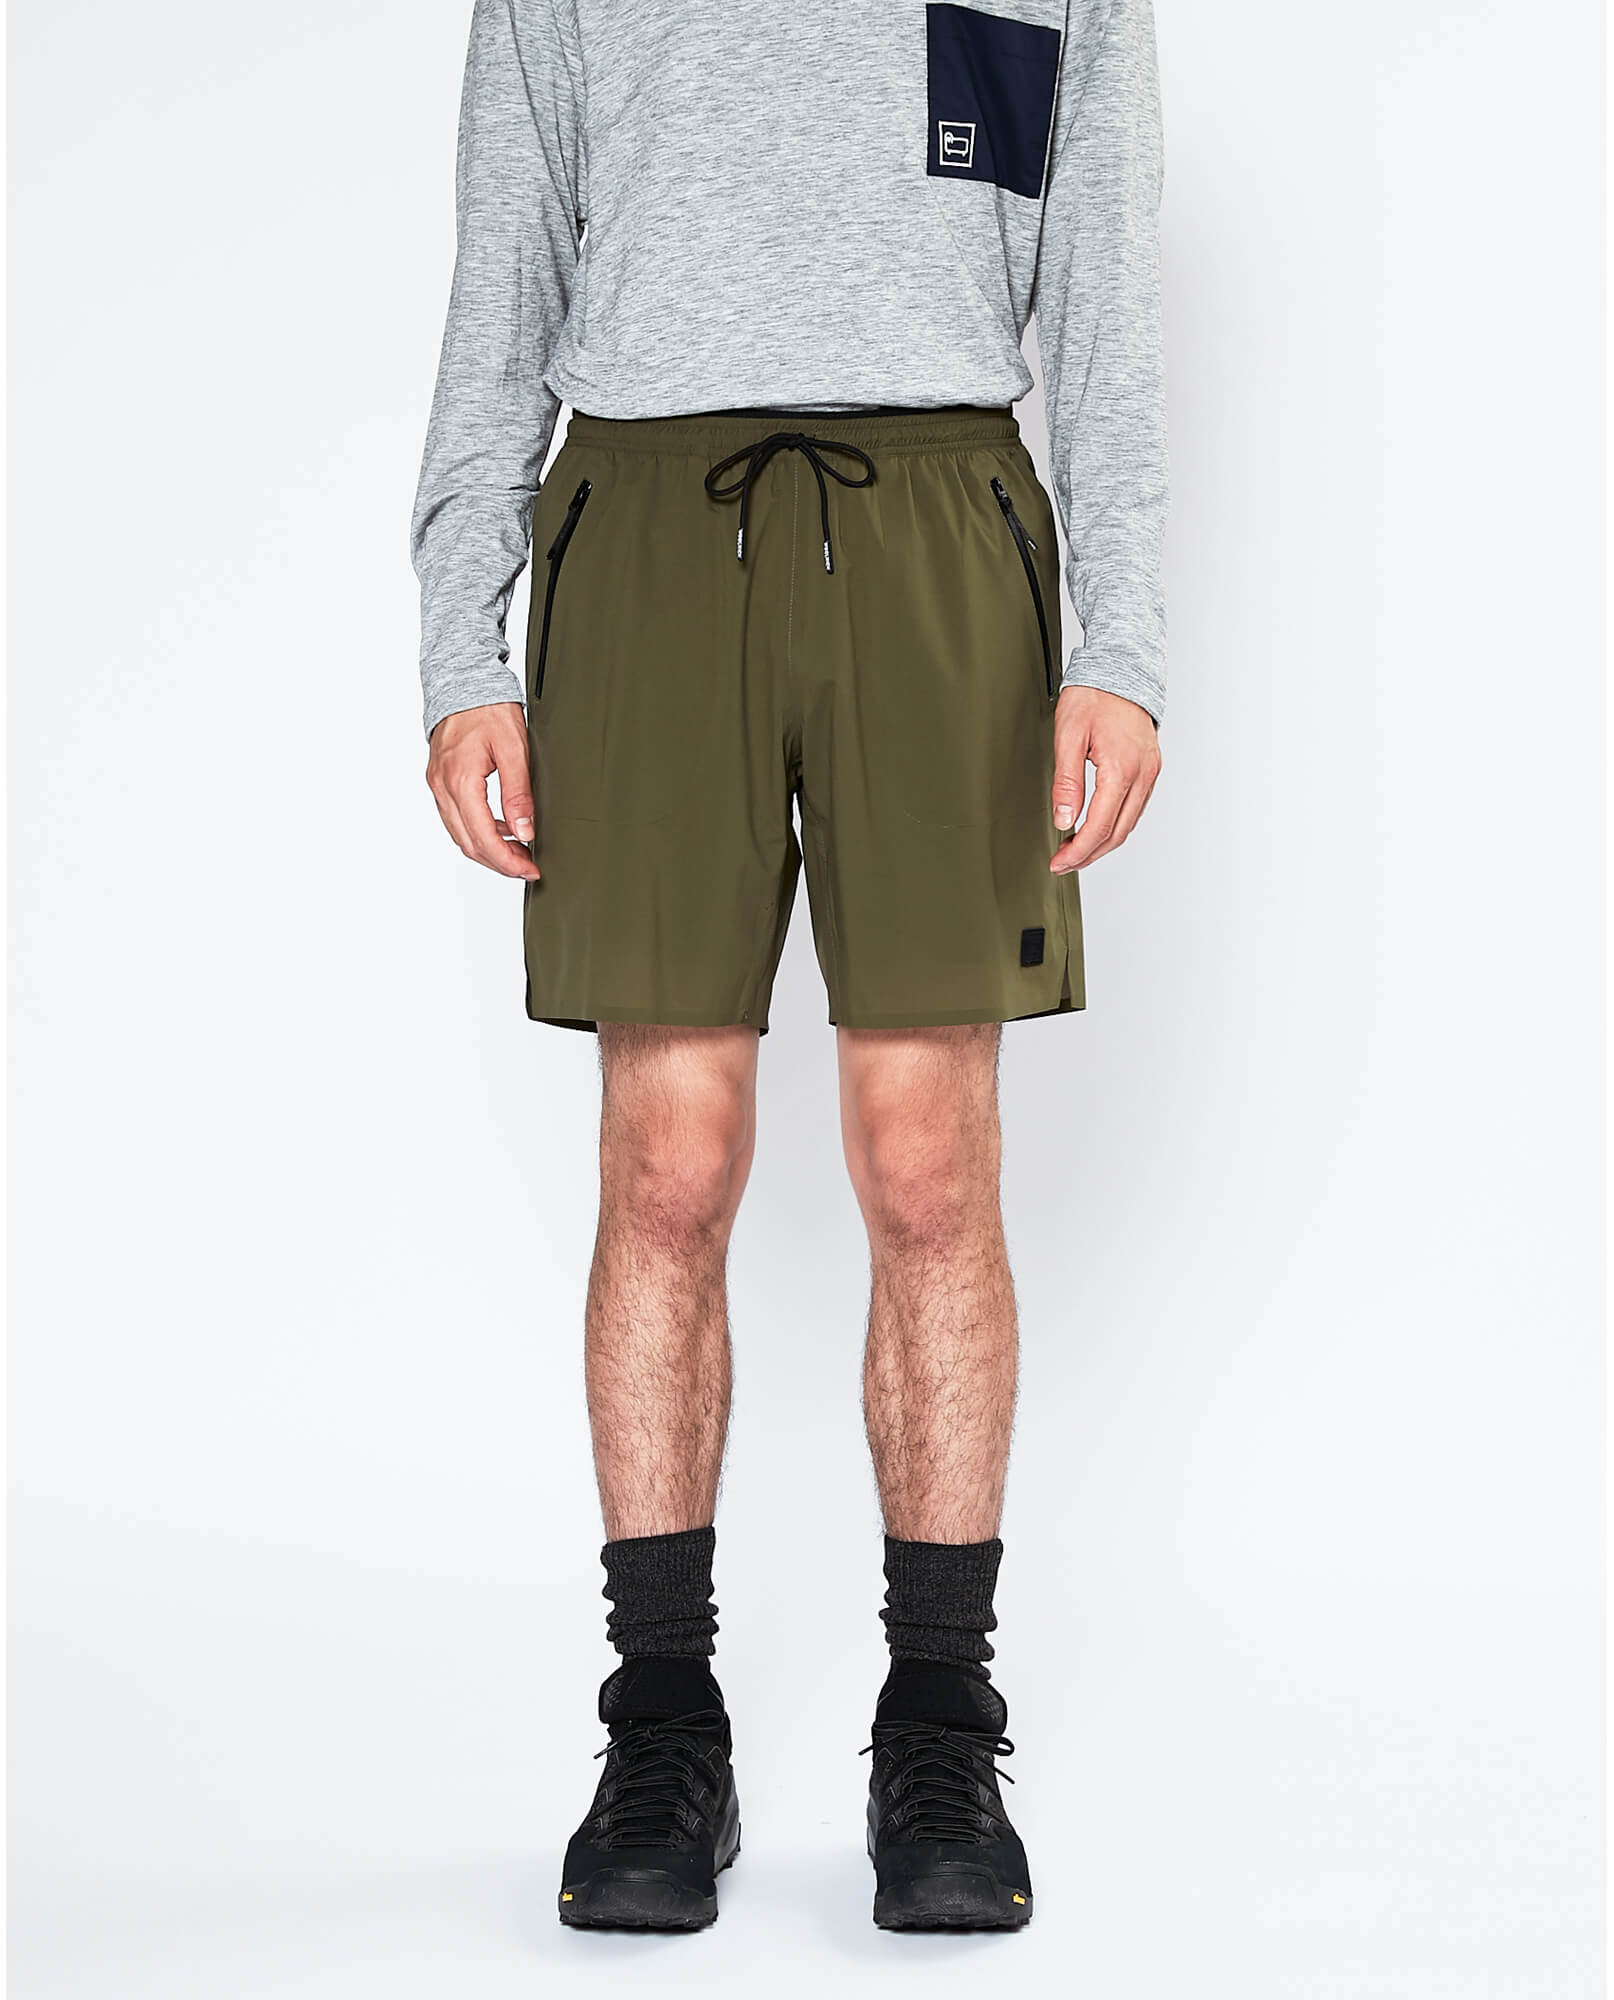 BOUNDLESS TRAIL SHORT